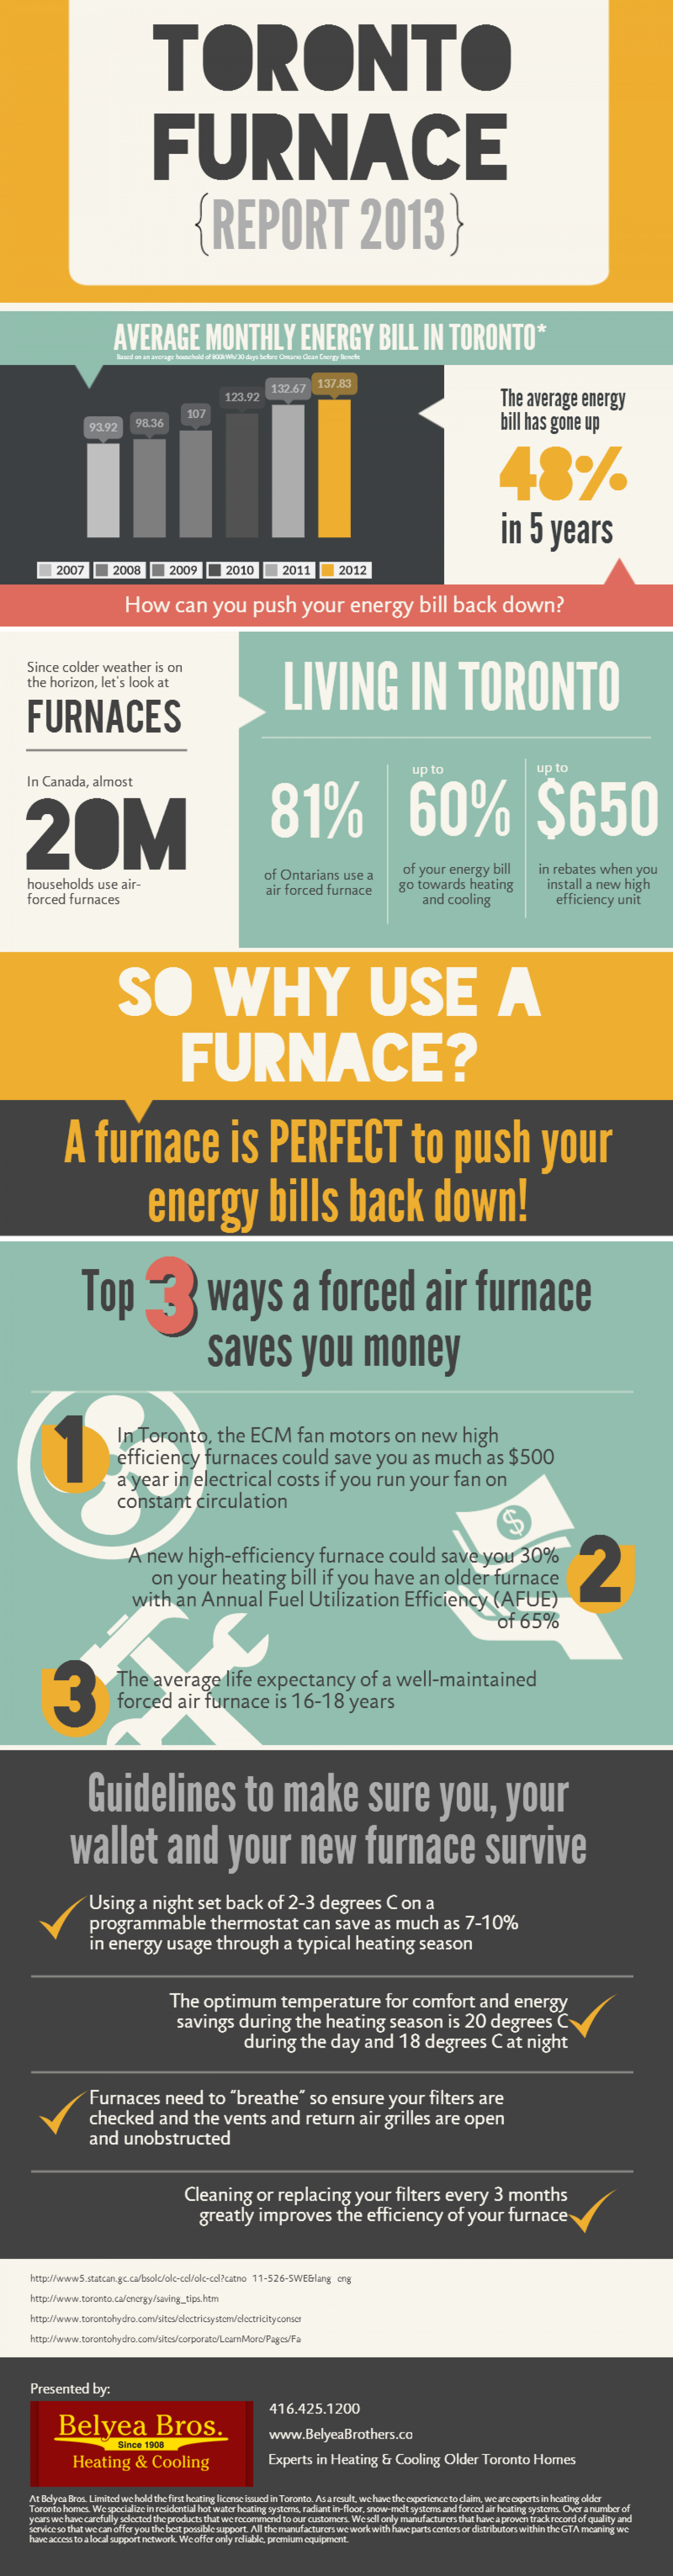 Toronto Furnace Report 2013 Infographic